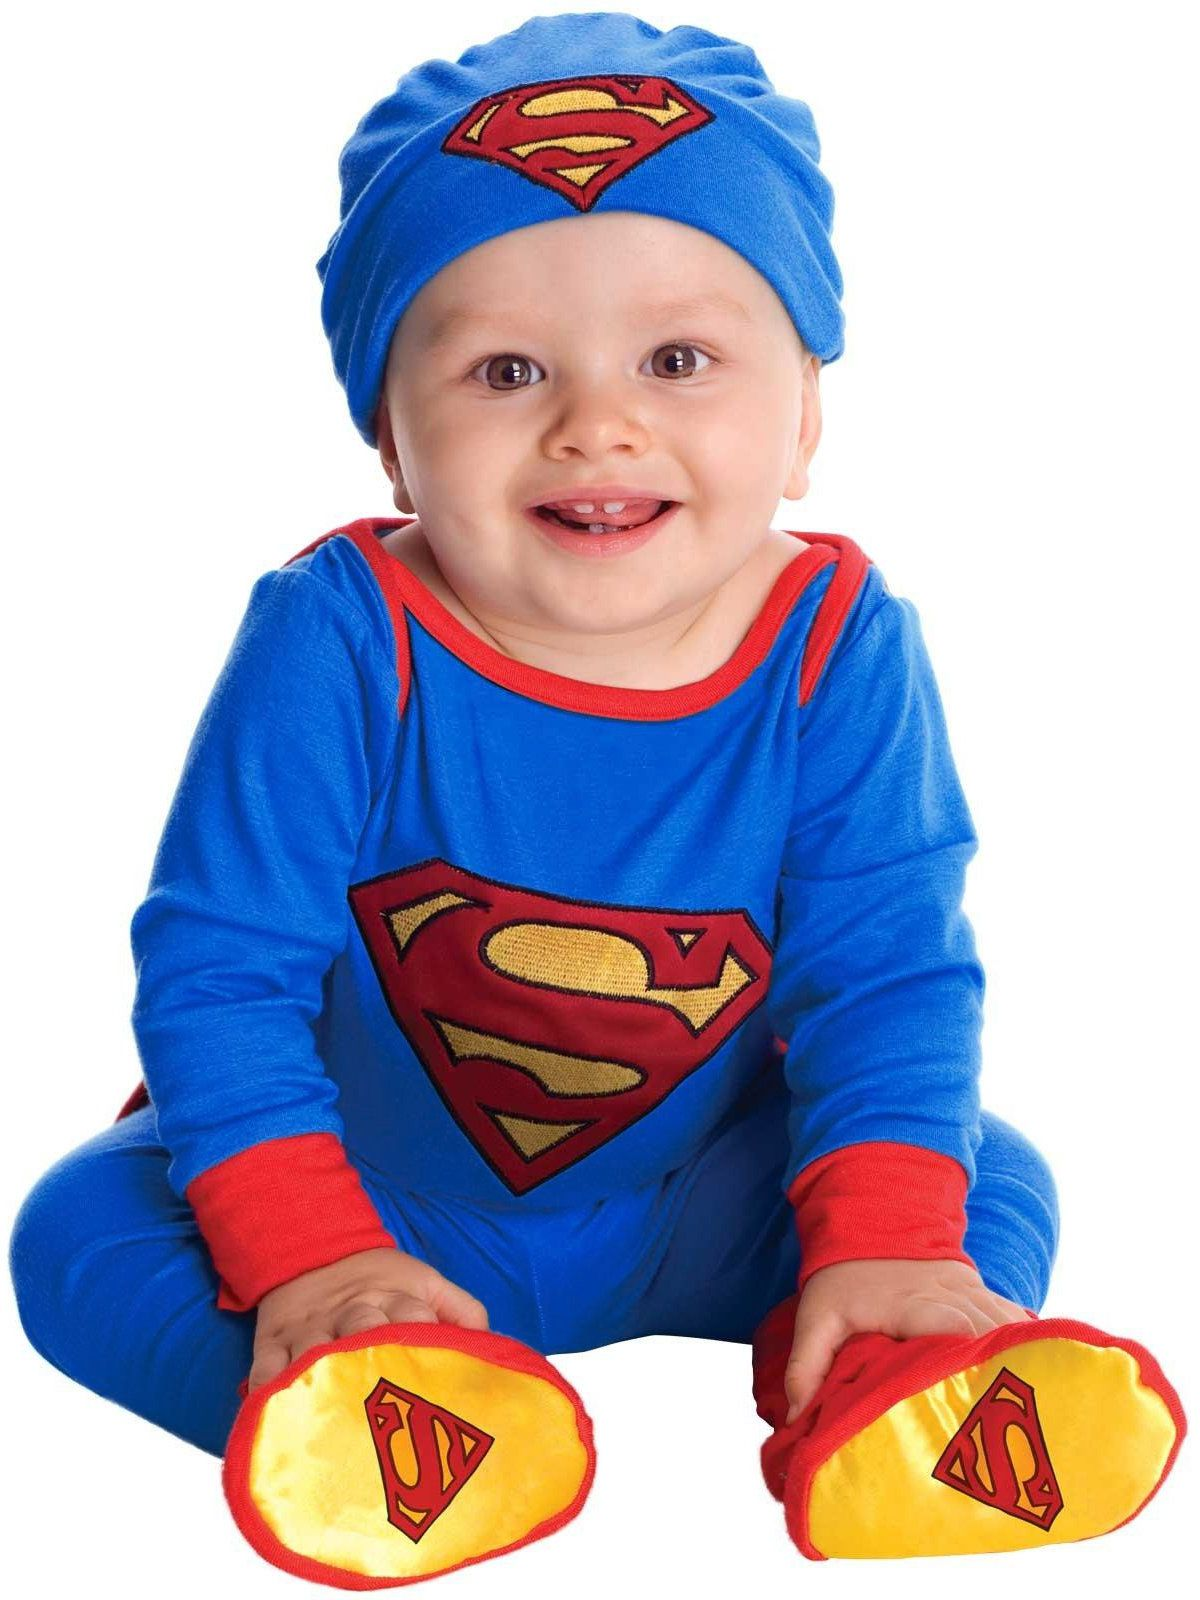 eb45f9bab507 Superman Jumper Infant Costume - Baby/Toddler Costumes for 2018 ...